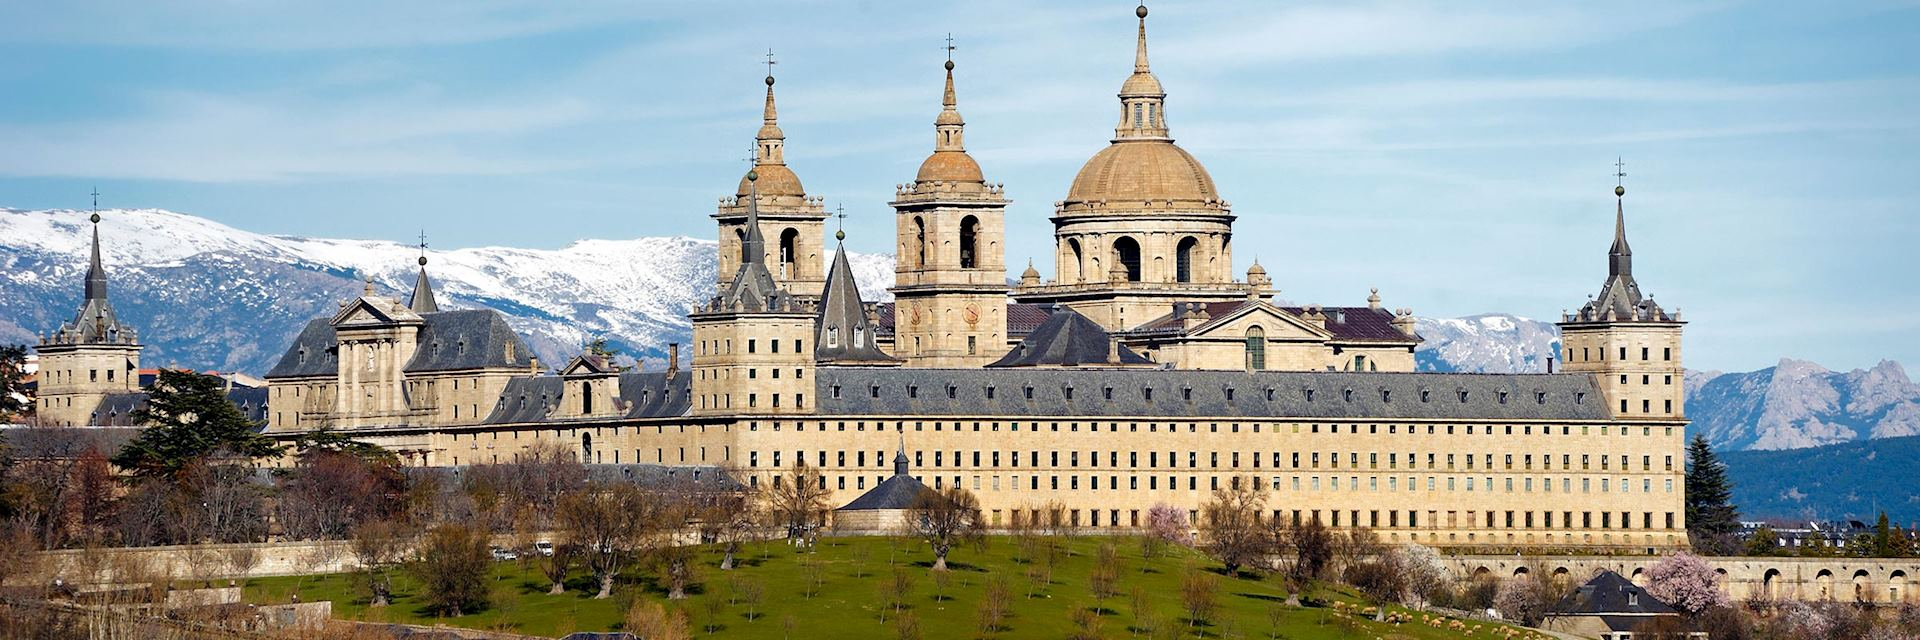 Palace in San Lorenzo de El Escorial